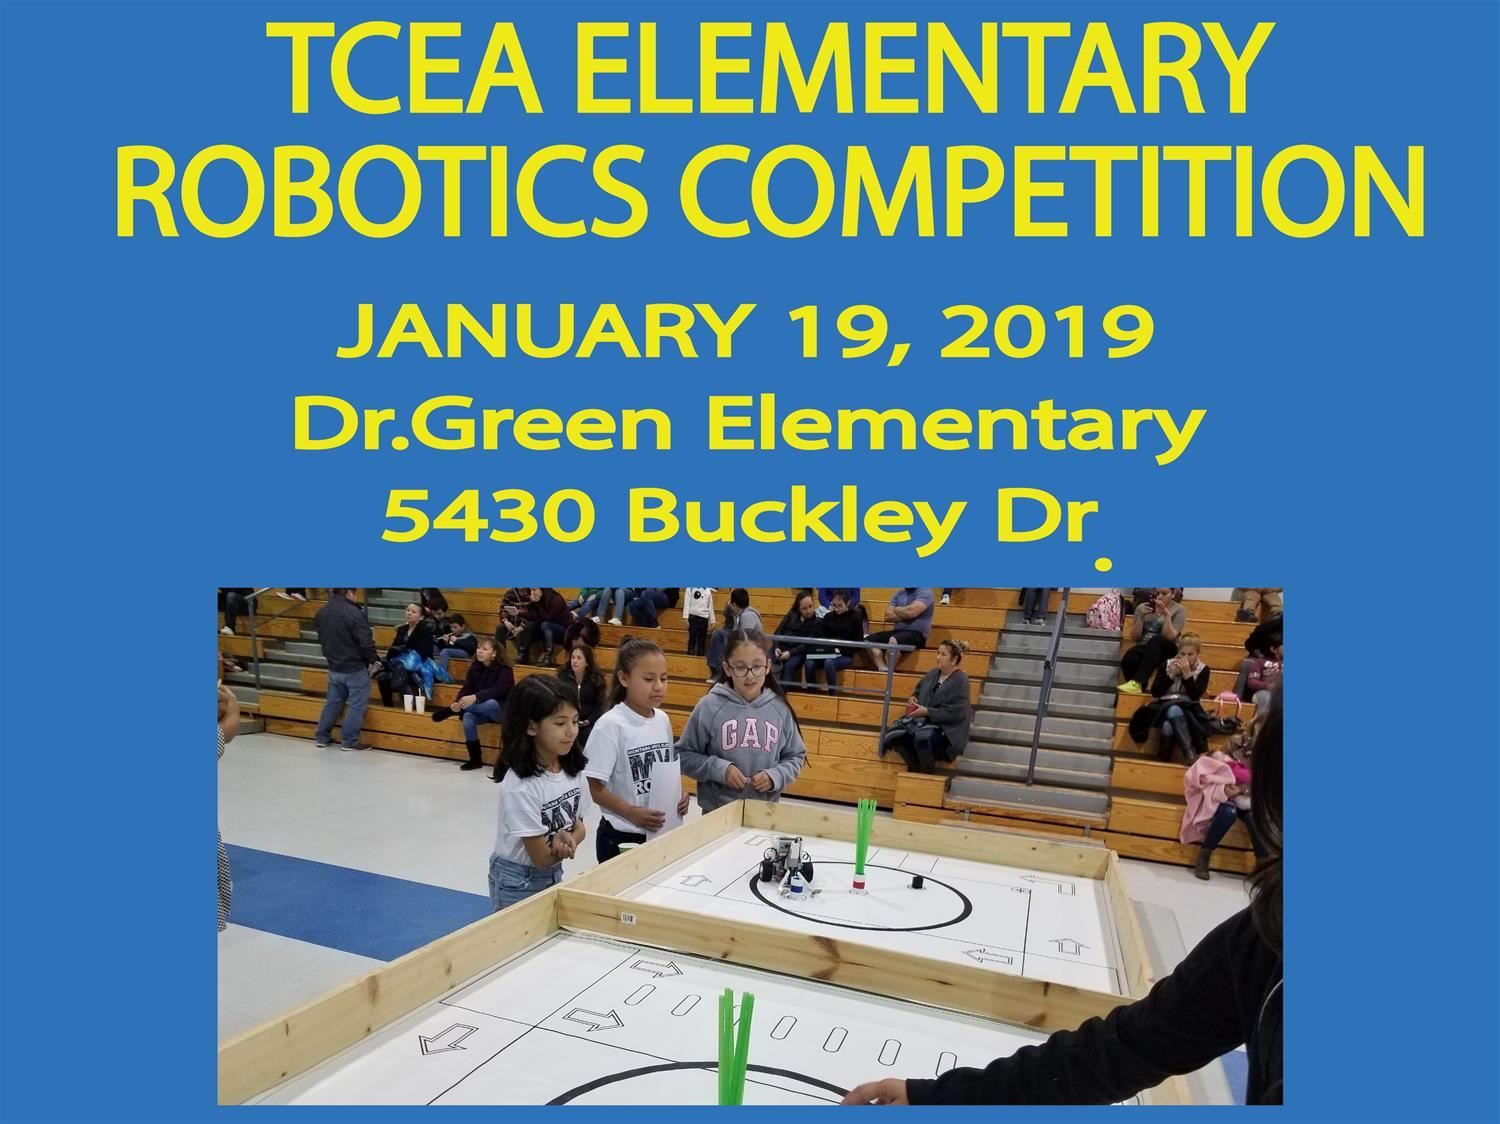 TCEA Region 19 - Lego EV3 Robotics Competition Jan. 18, 2019